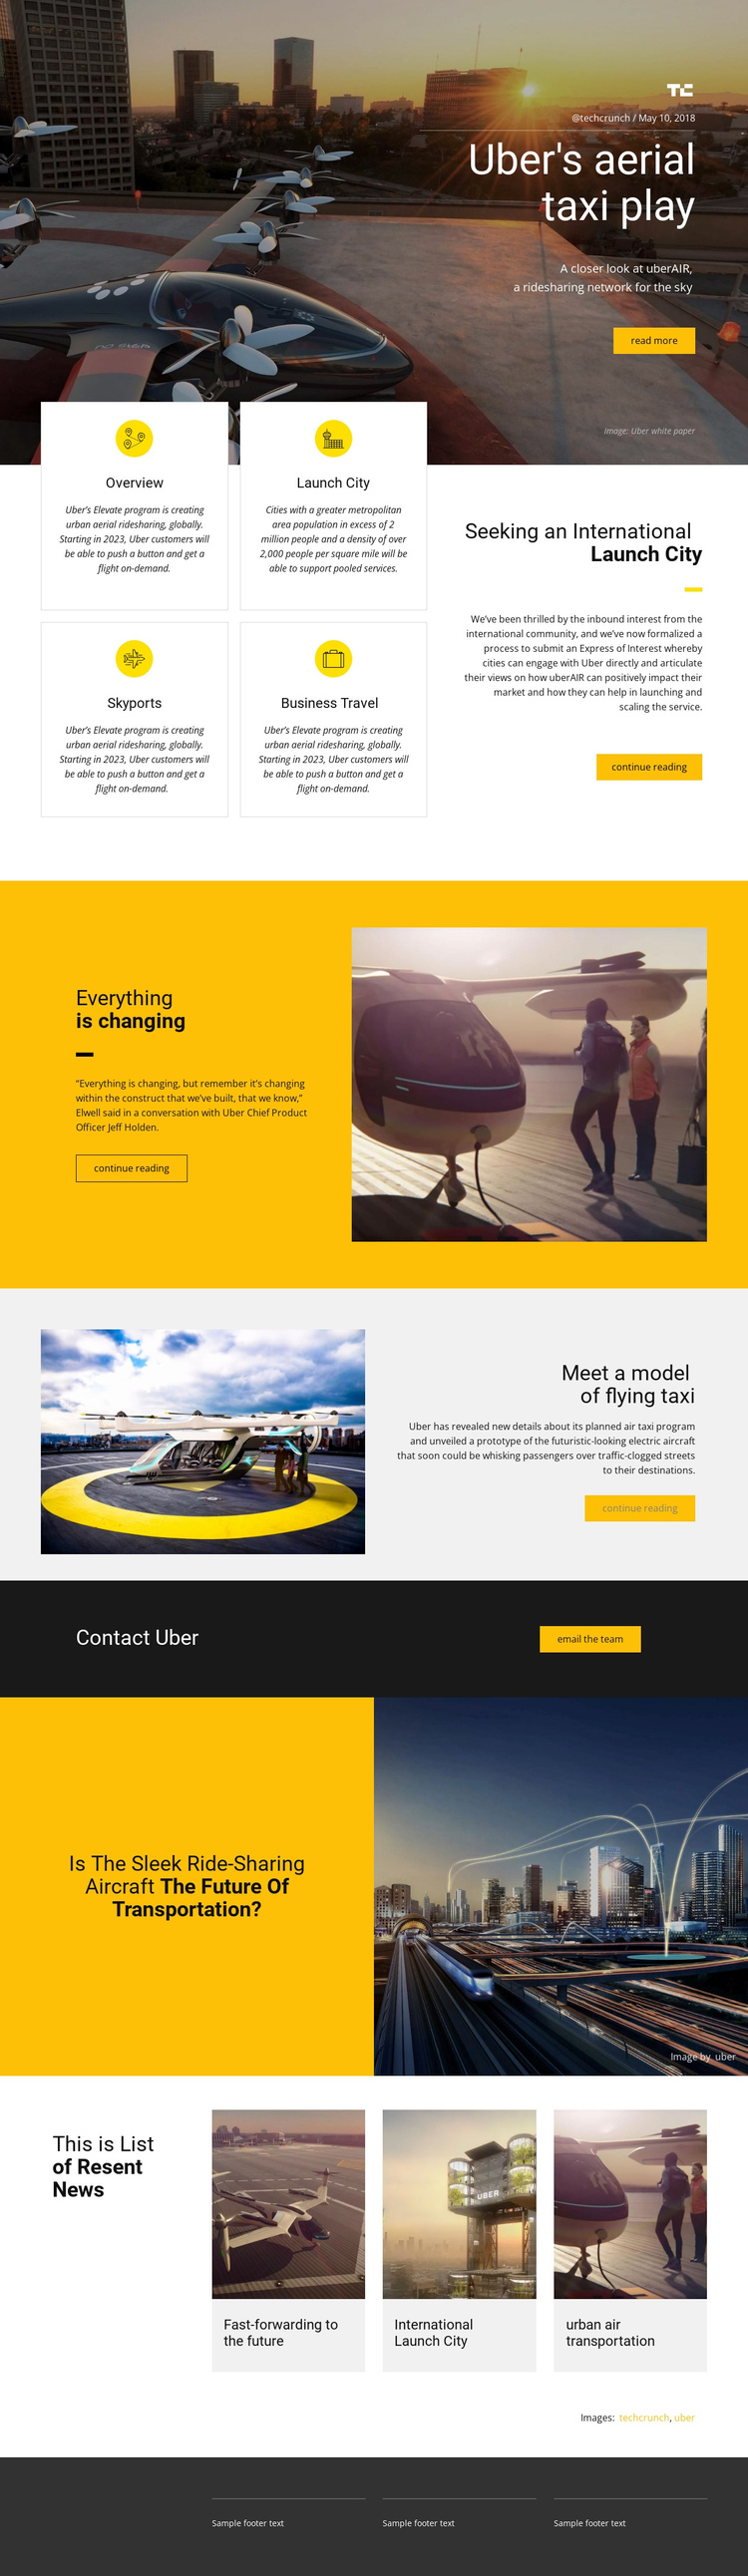 Uber's Aerial Taxi Play Website Builder Software